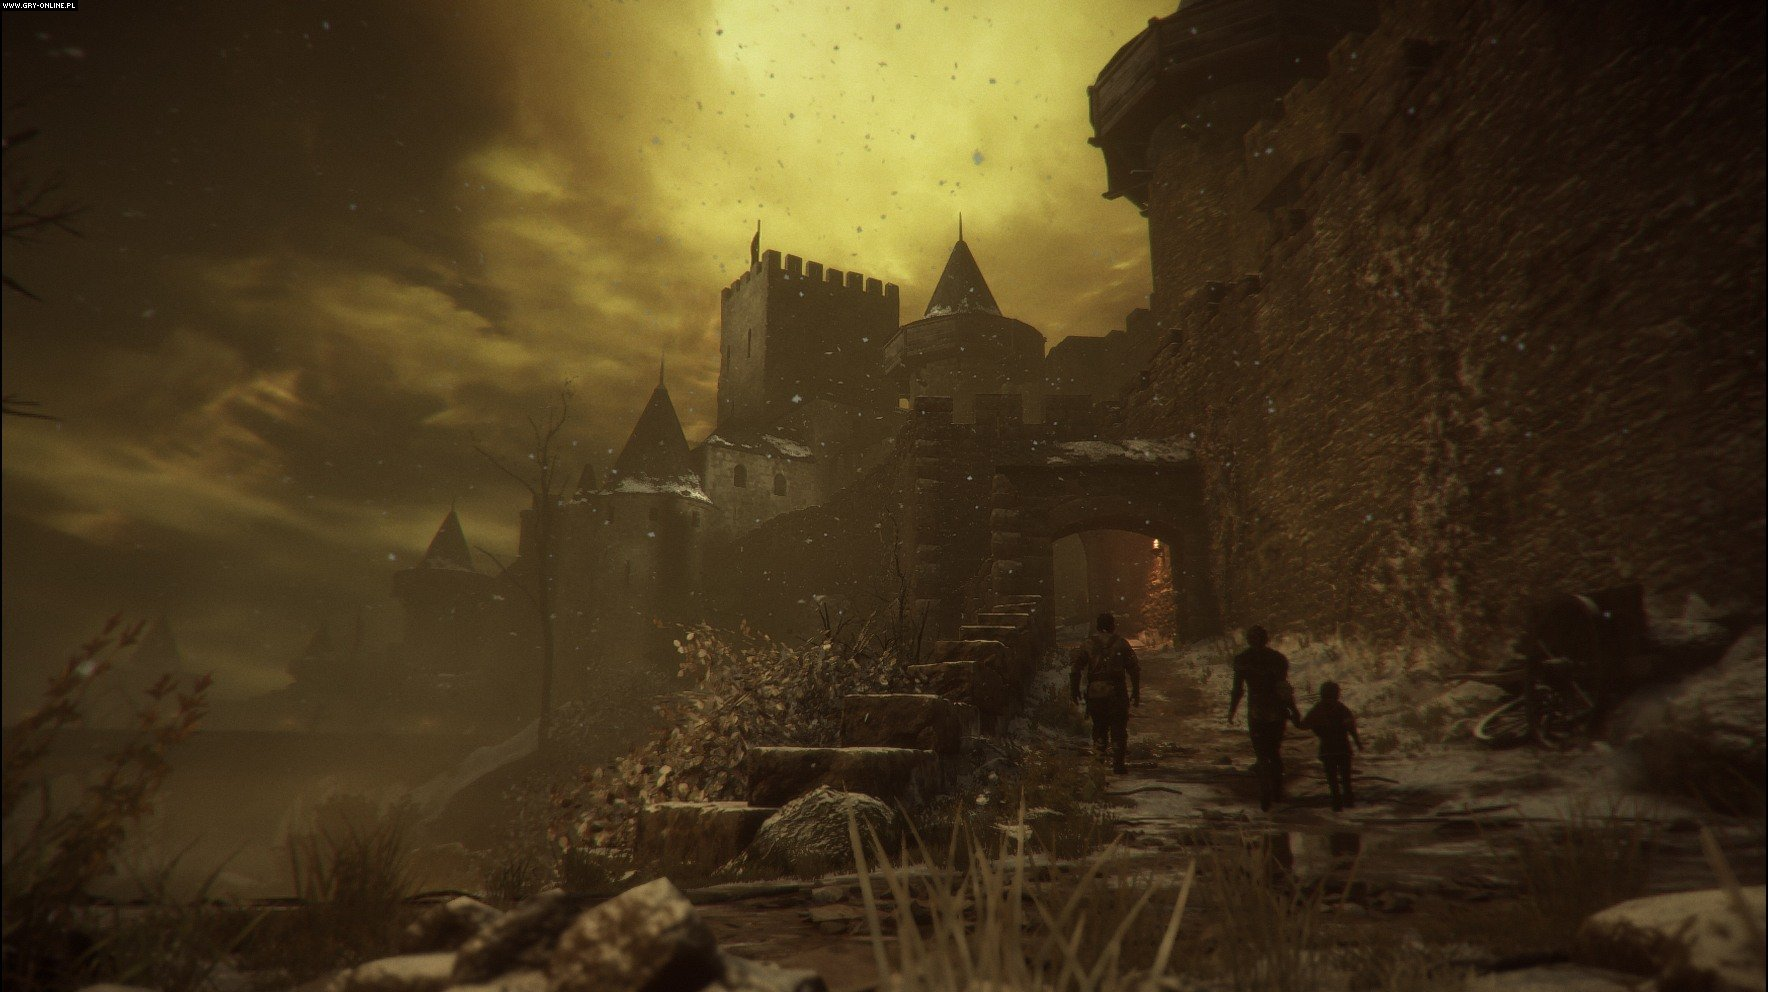 A Plague Tale: Innocence PC, PS4, XONE Games Image 4/30, Asobo Studio, Focus Home Interactive